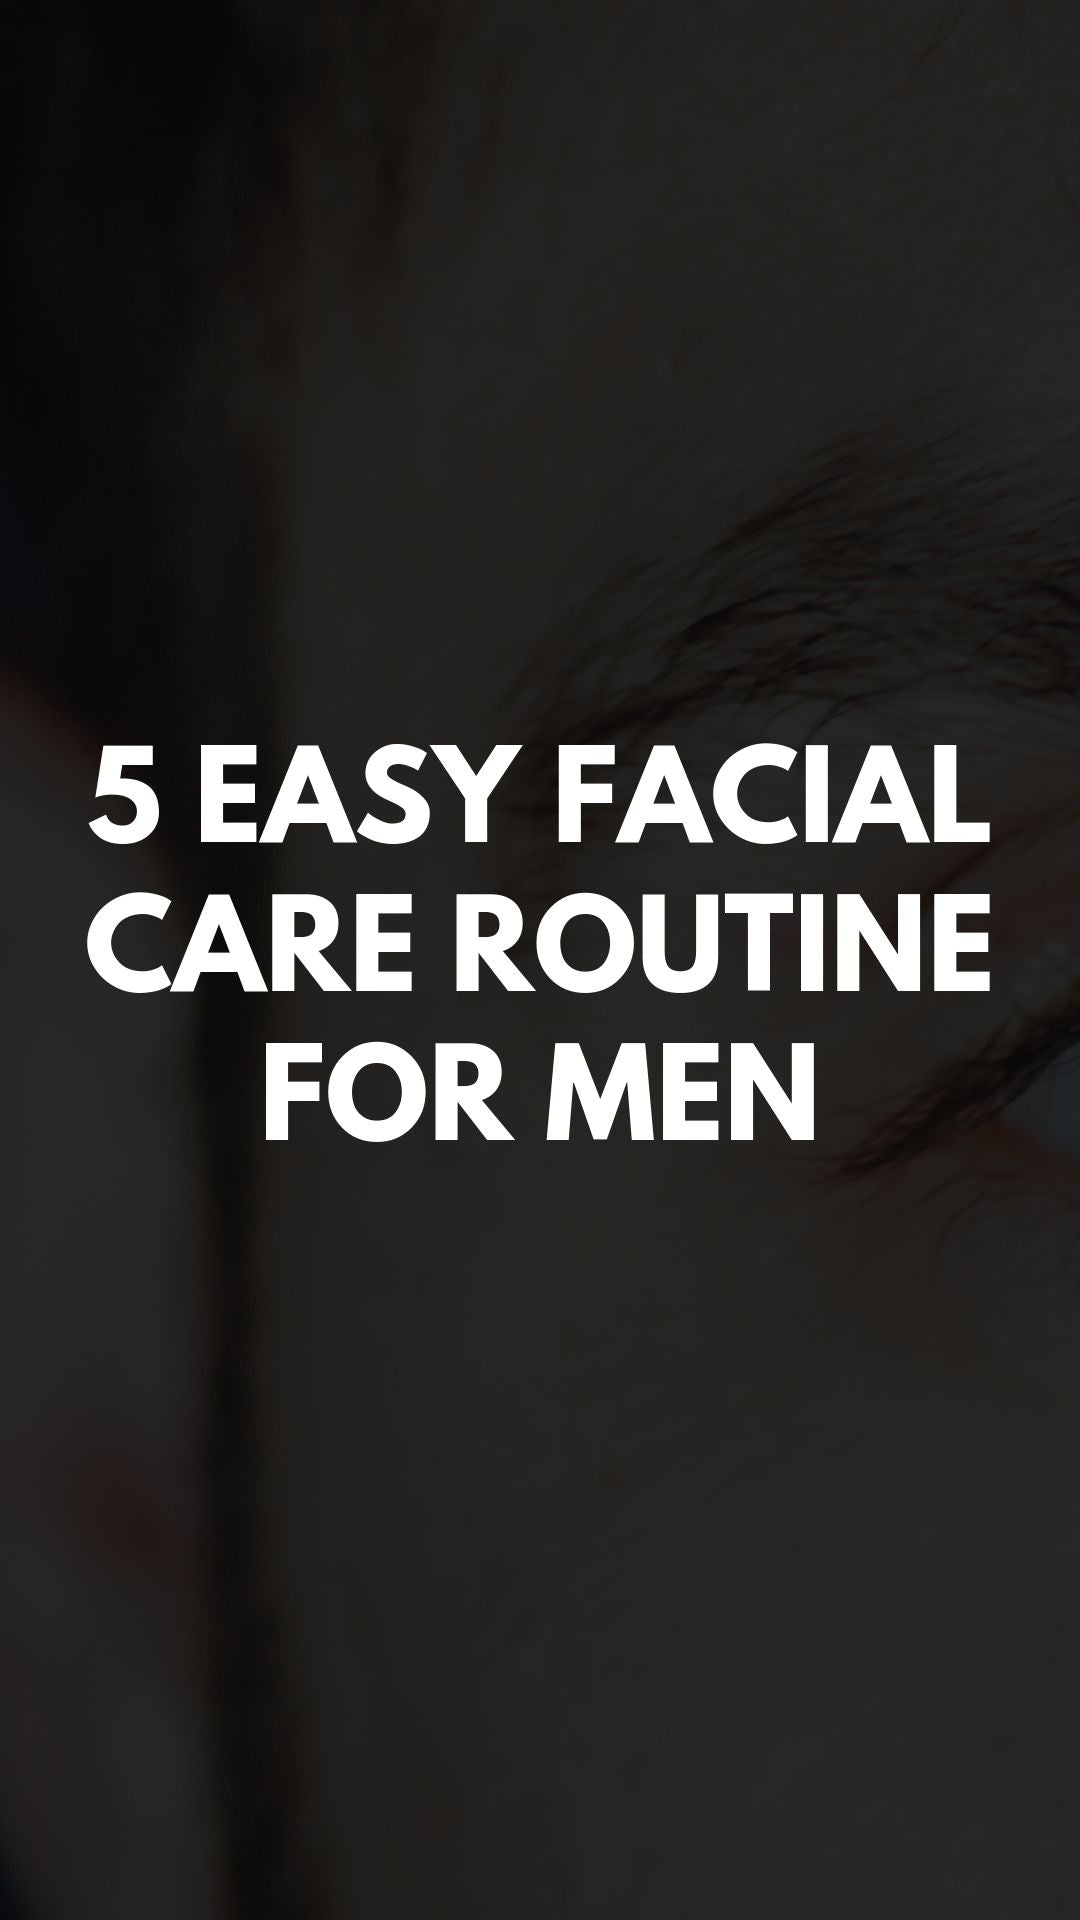 5 Easy Facial Care Routine for Men